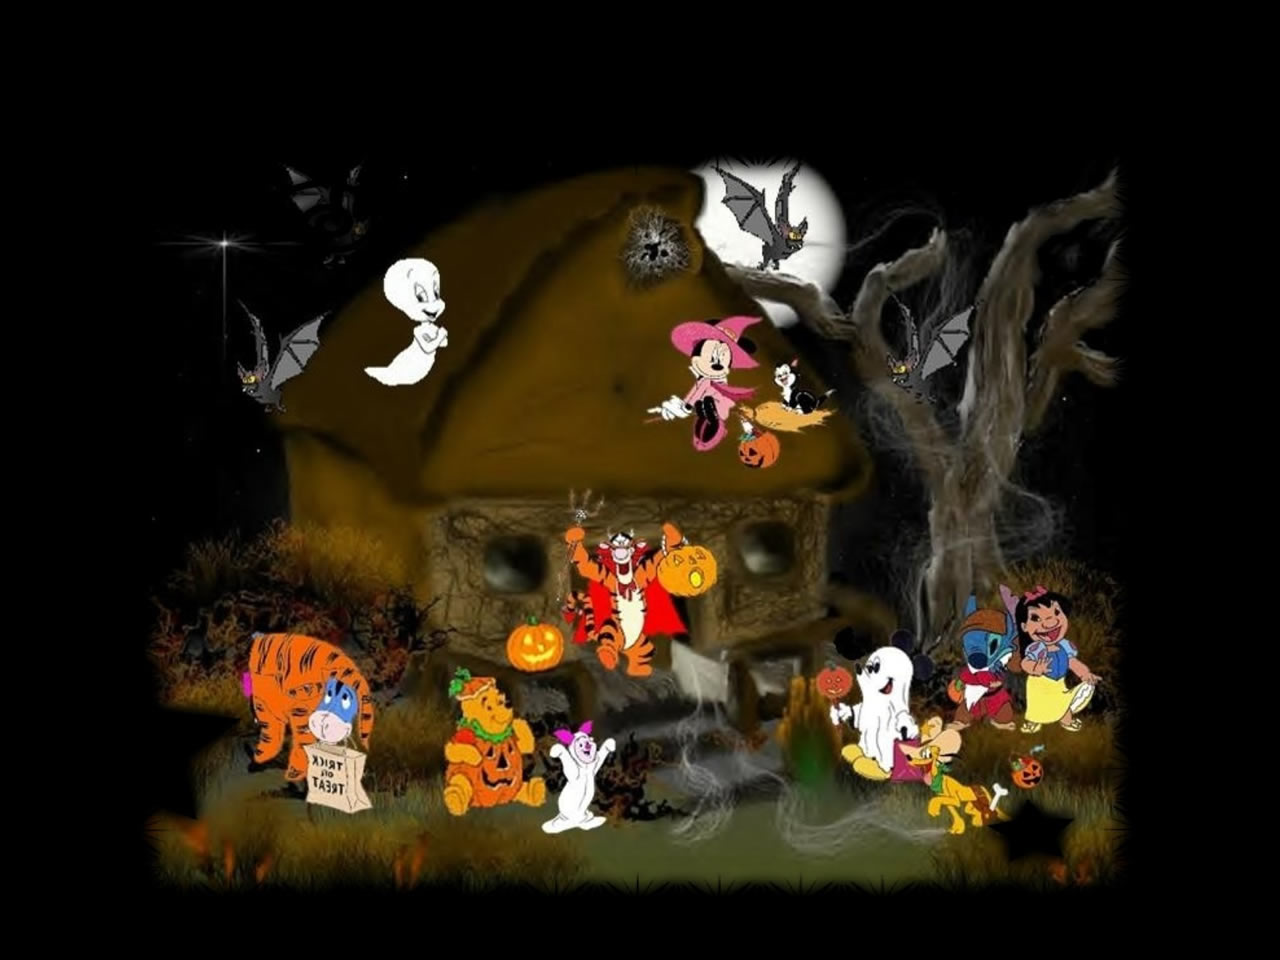 Haunted clipart horror movie Wallpapers this wallpaper Disney free